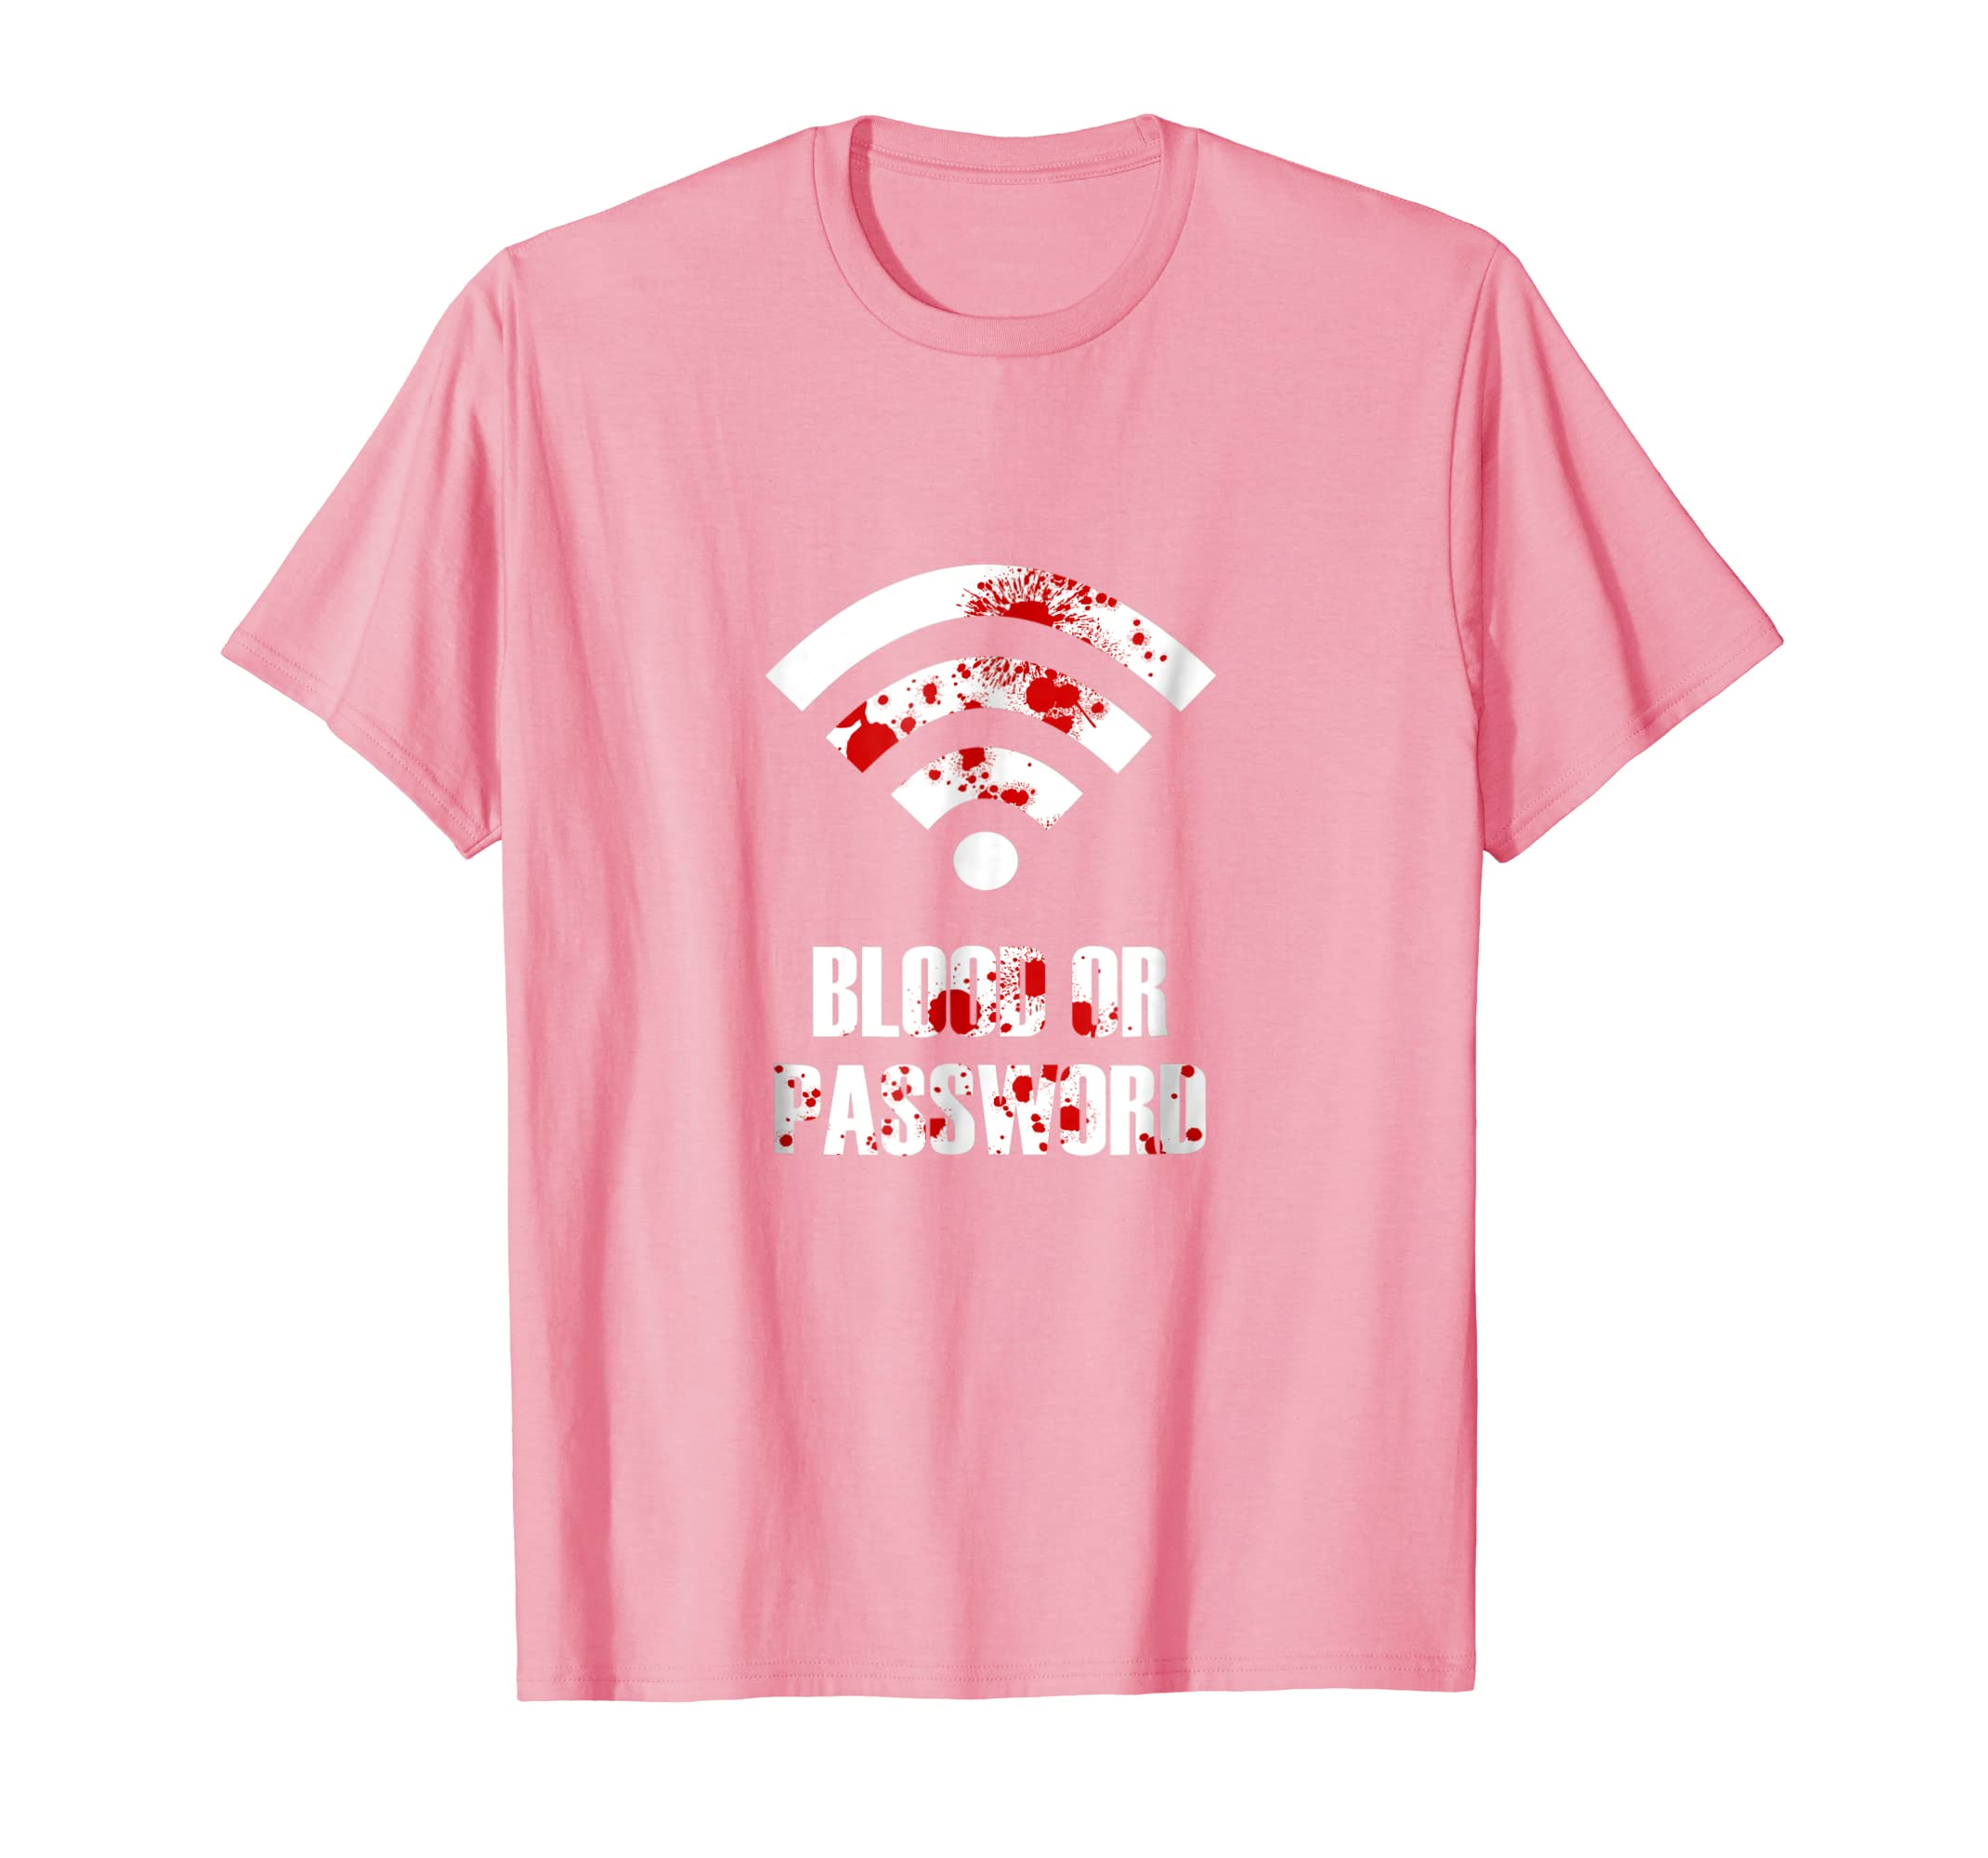 Adults Funny Halloween Tee Kids Blood or Password TShirt-Rose